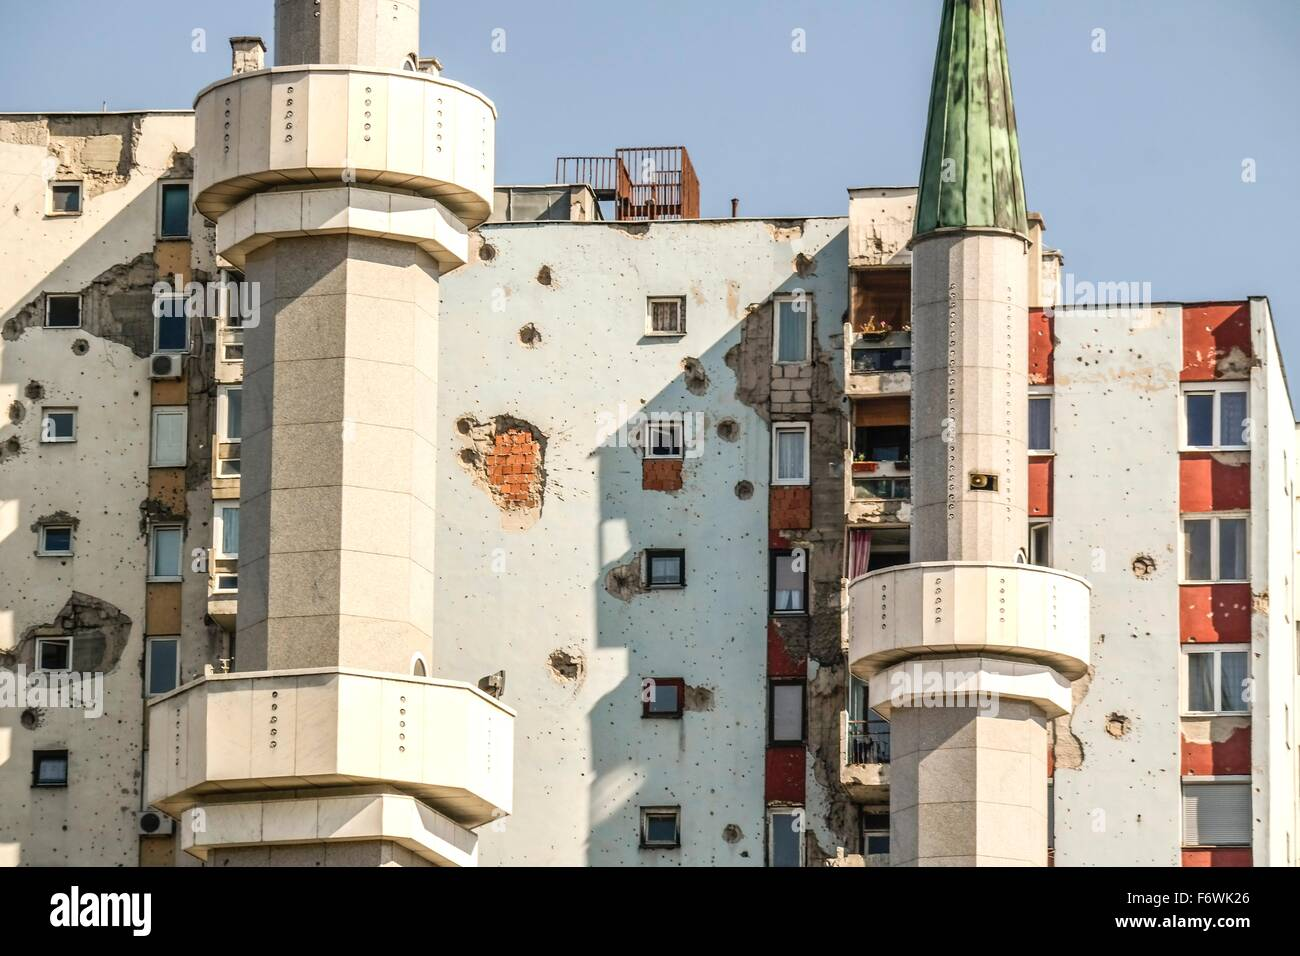 Residential building complexes in Dobrinja (Sarajevo) with remnants of artillery shellings of the Bosnian Civil - Stock Image